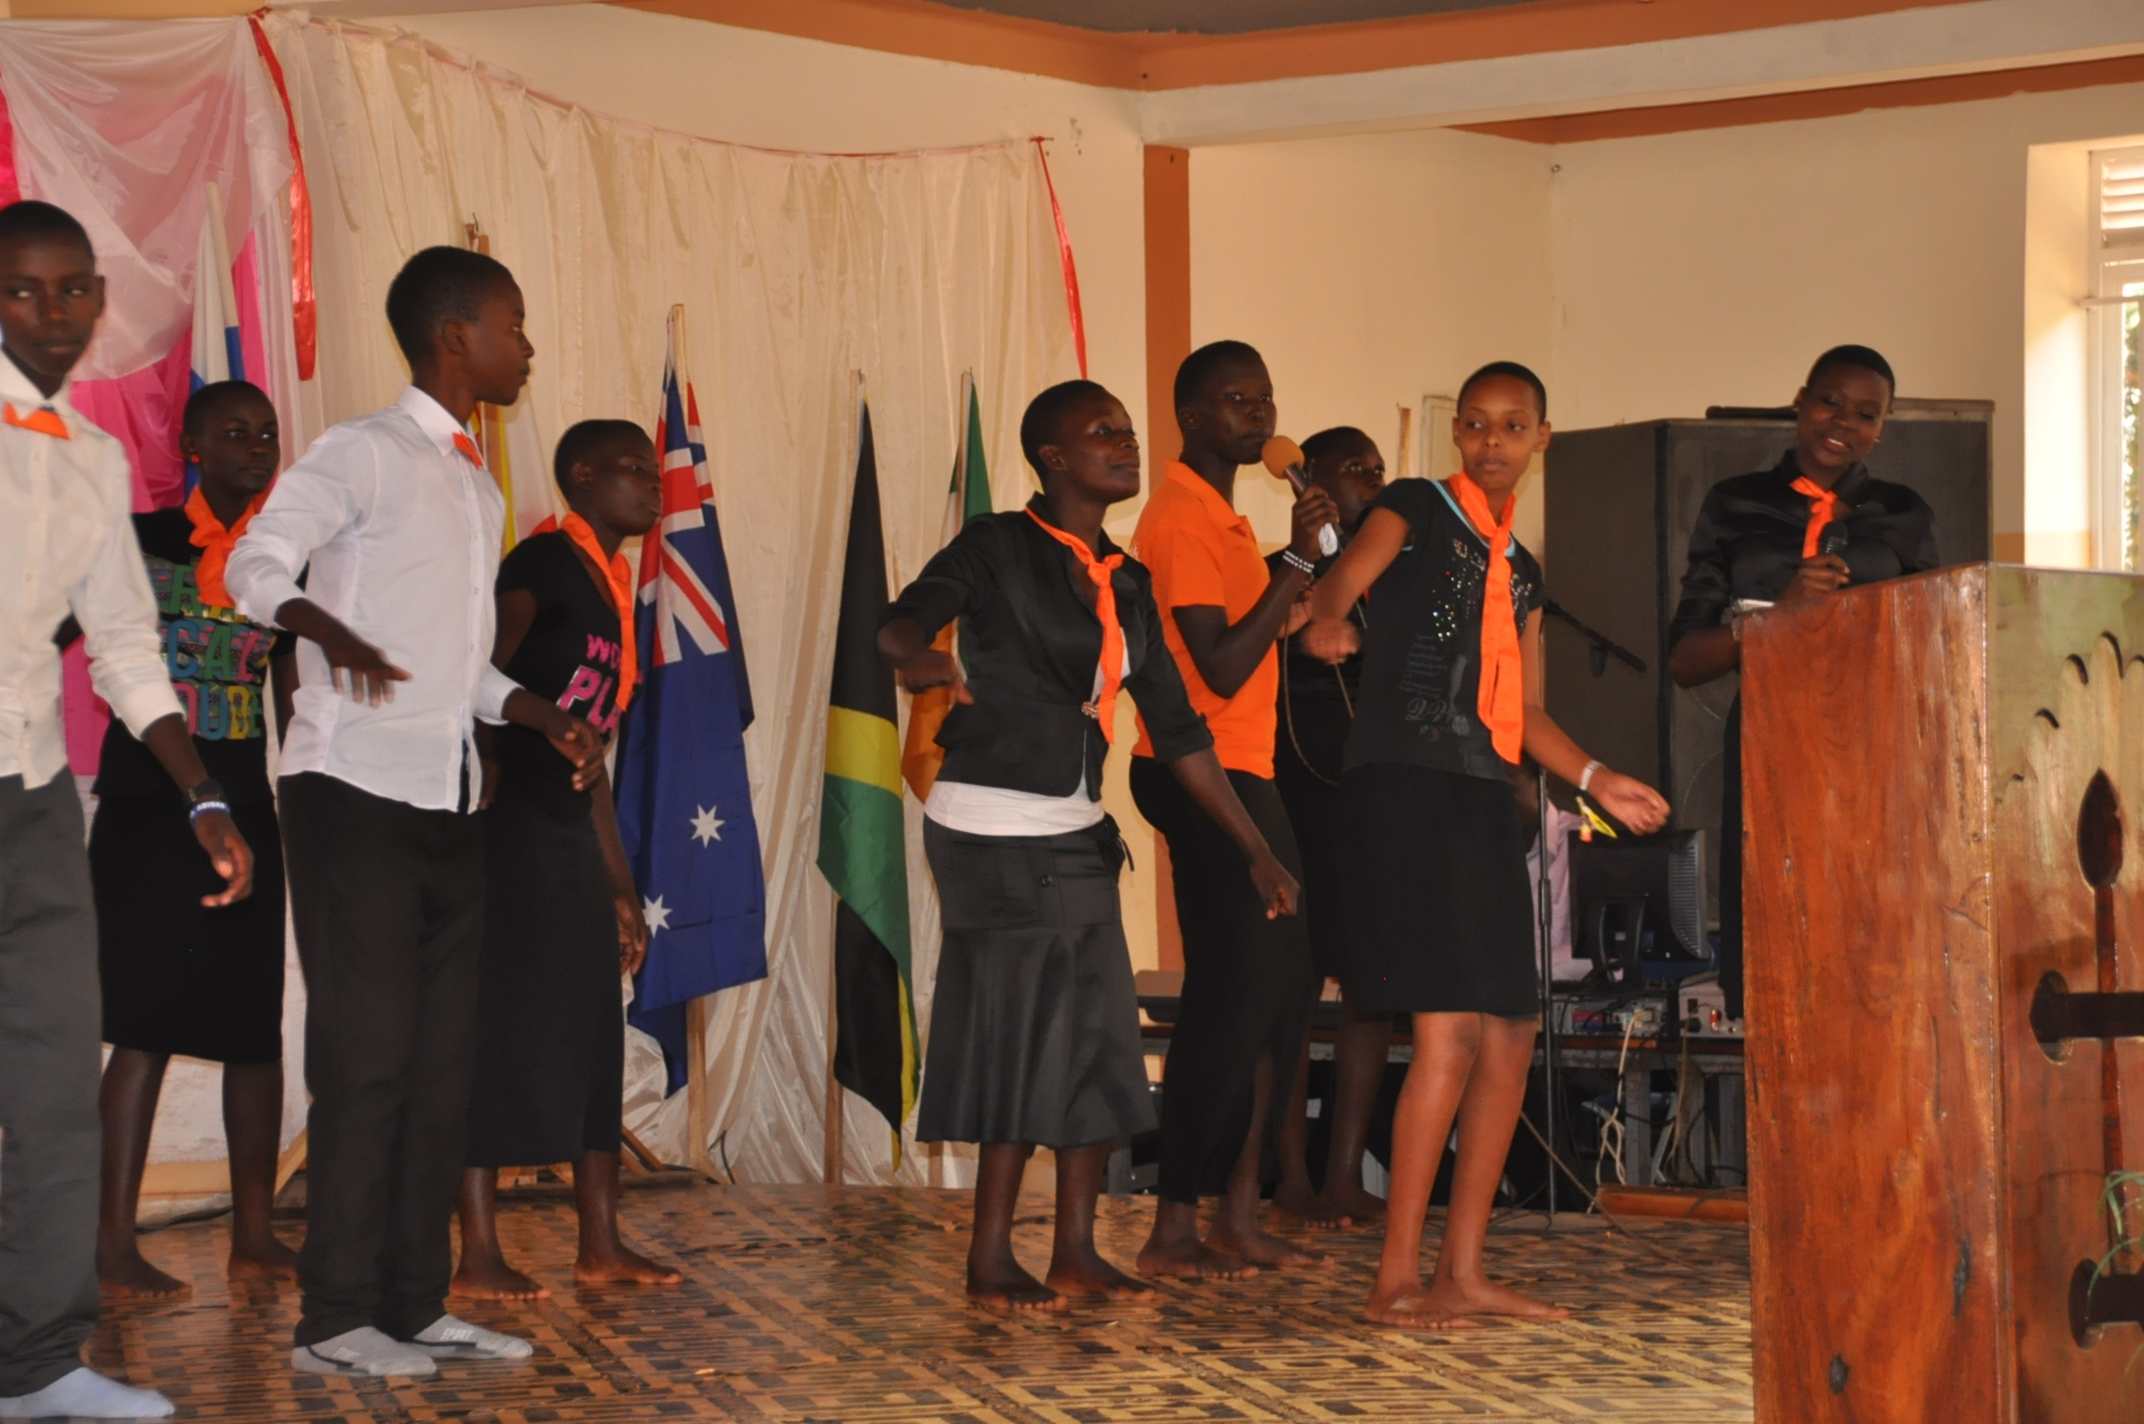 Luwero youngsters leading worship